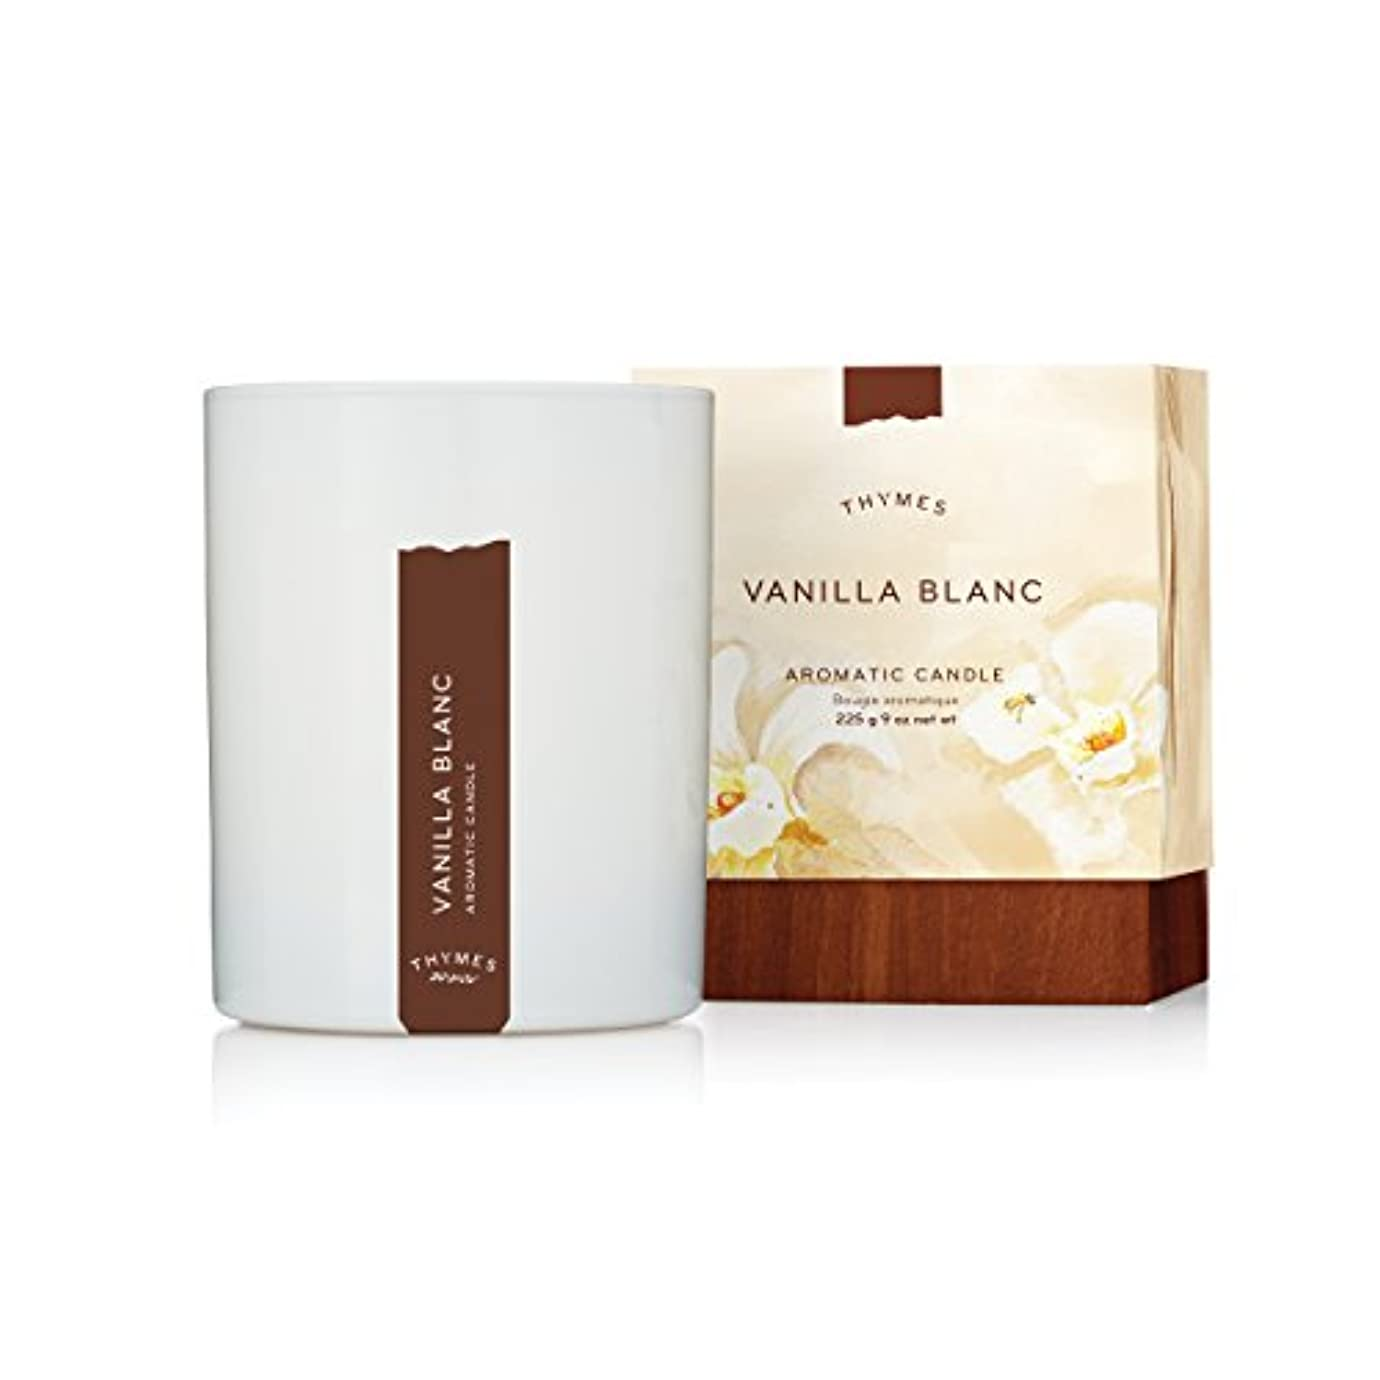 スリップシューズ撤回する座標Thymes - Vanilla Blanc Aromatic Scented Candle - Long Lasting Warm Vanilla Scent with Gift Box - 9 oz